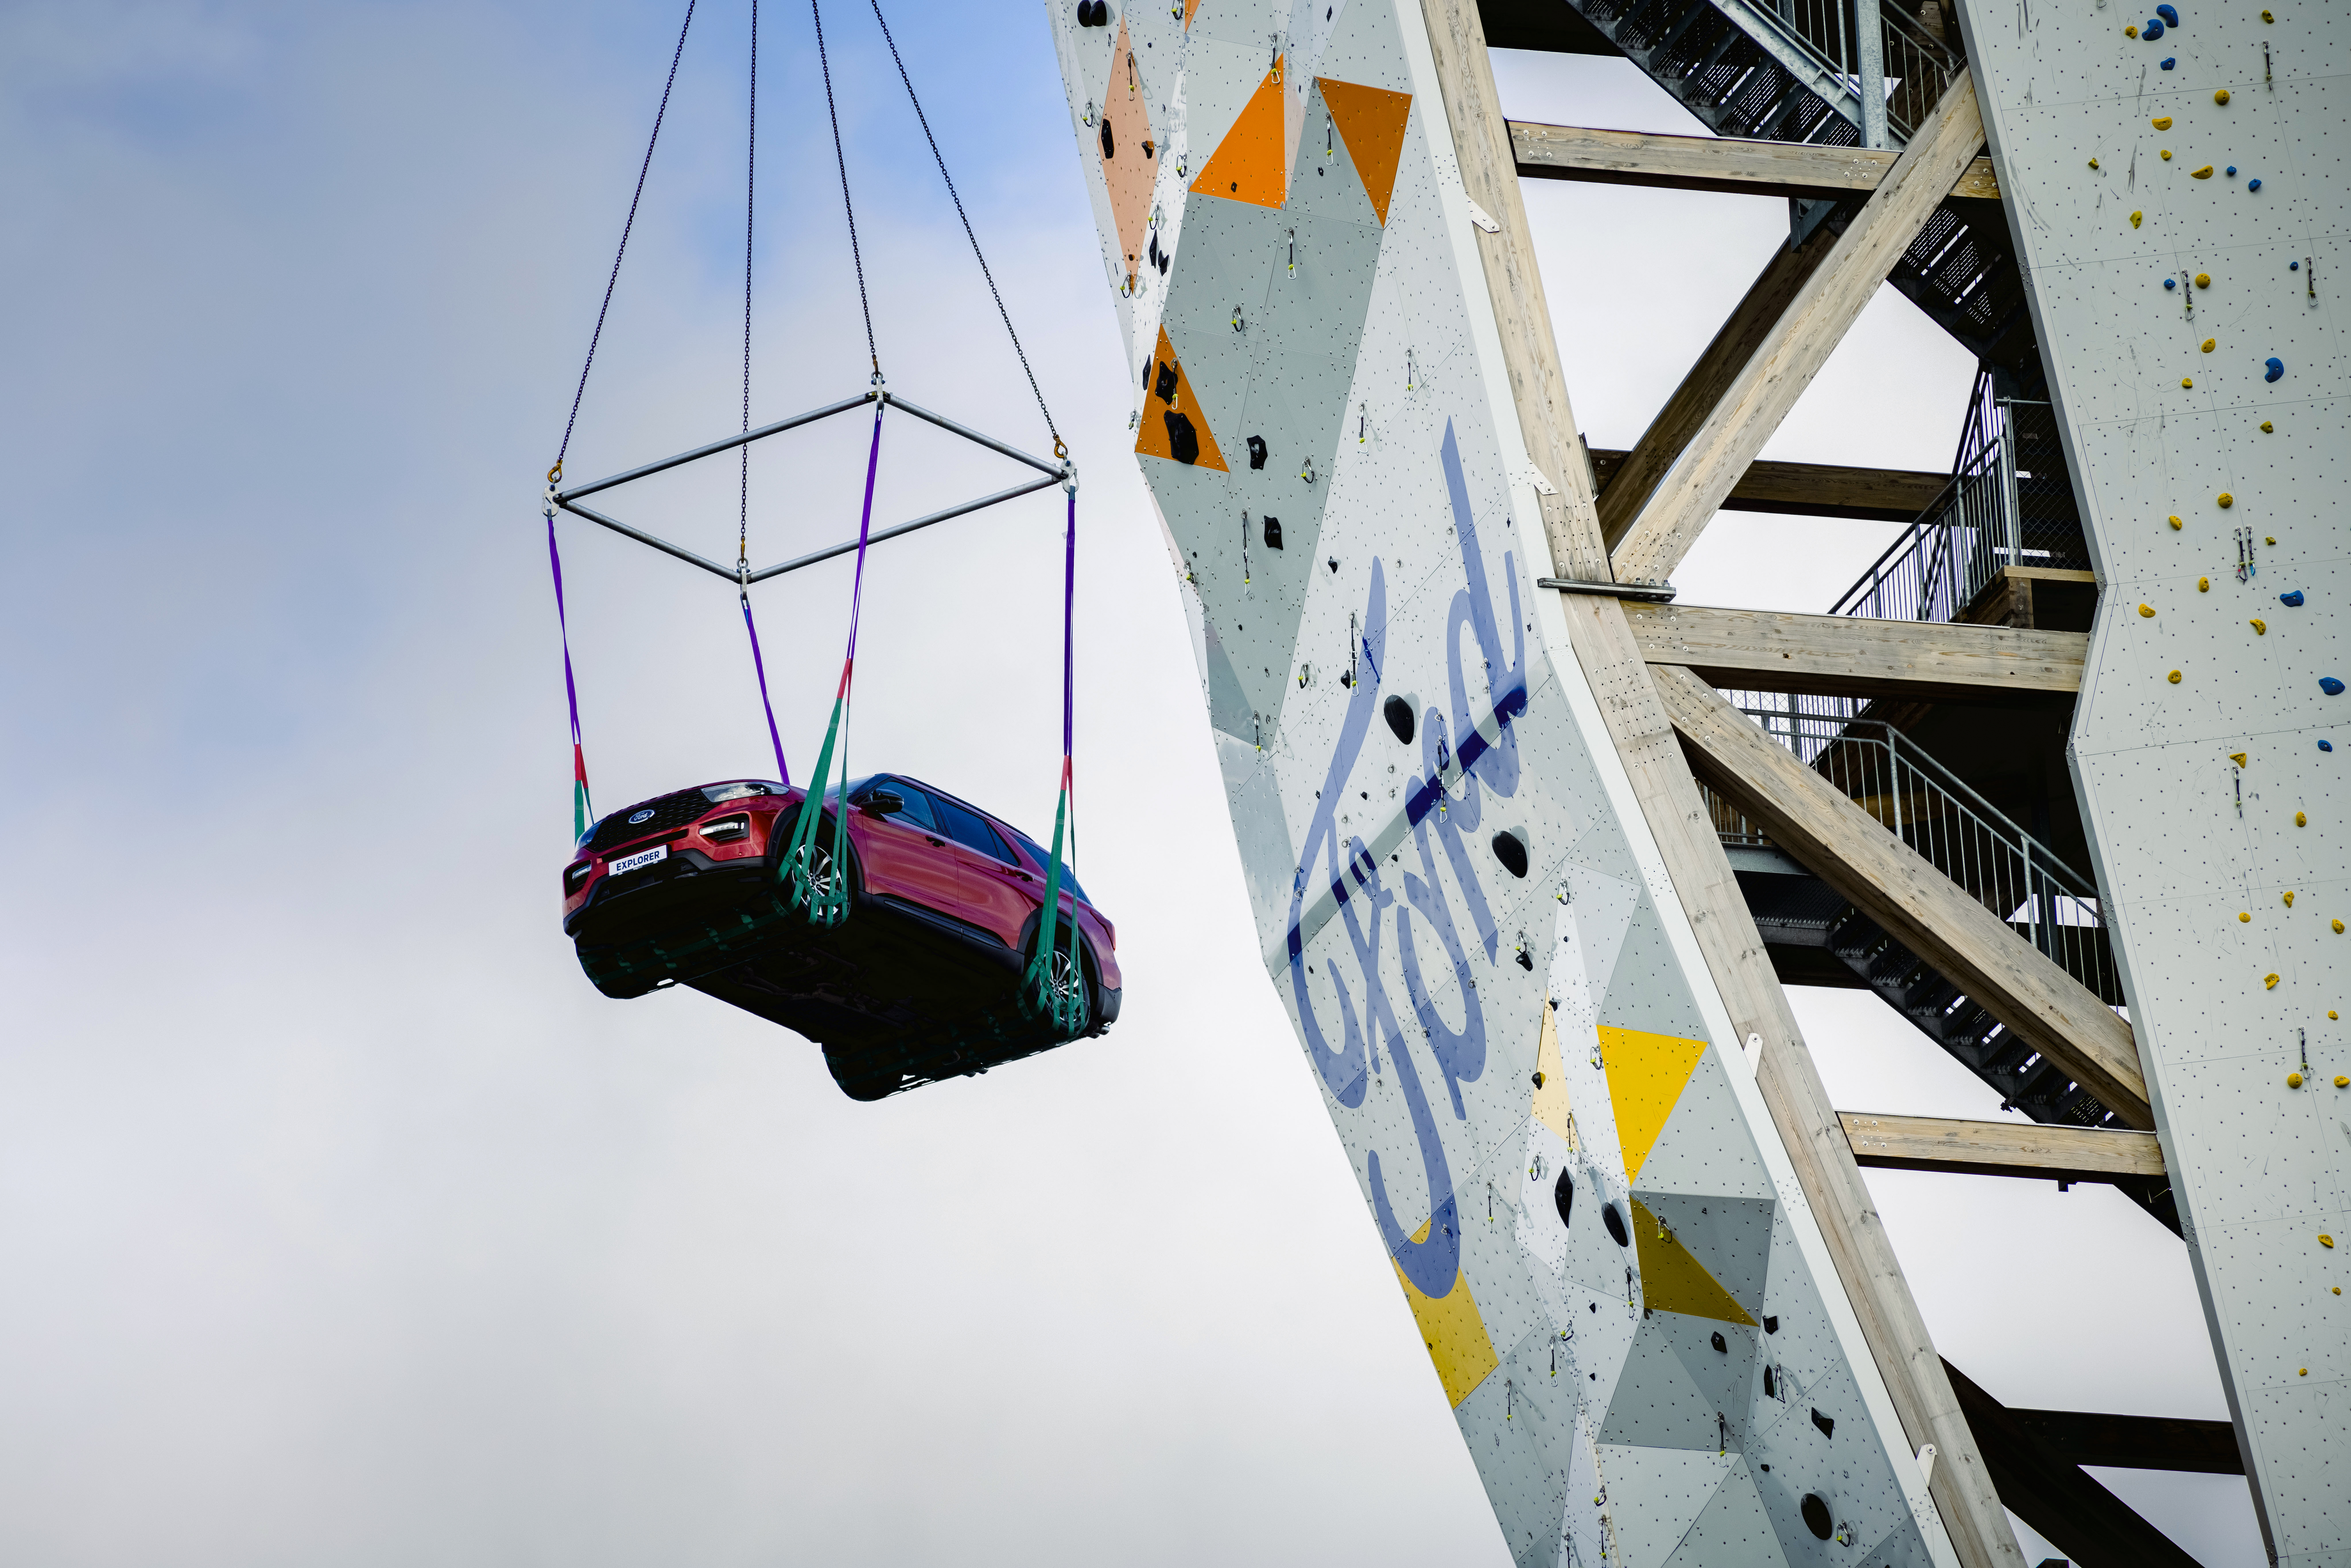 Vertigo sufferers should look away now, because Ford has scaled new heights with an ambitious sport climbing challenge that involved a Ford Explorer Plug-In Hybrid atop the tallest free-standing climbing tower in the world.